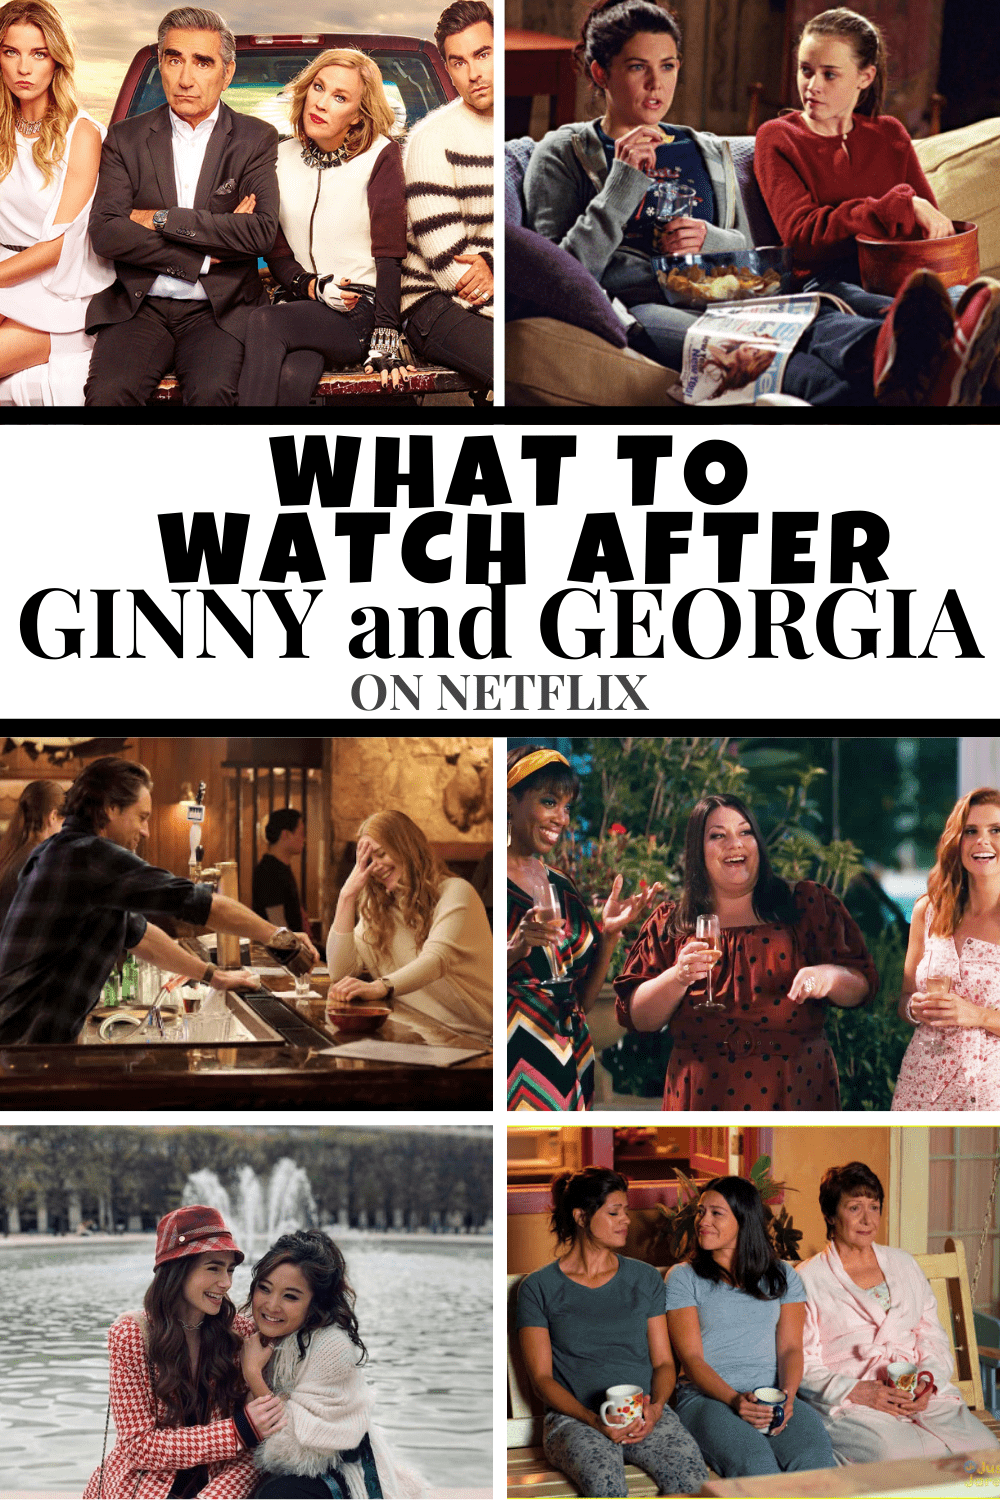 You've binged the Netflix show Ginny and Georgia, now what do you watch? Check out this list for what to watch after Ginny and Georgia that's also happens to be streaming on Netflix.